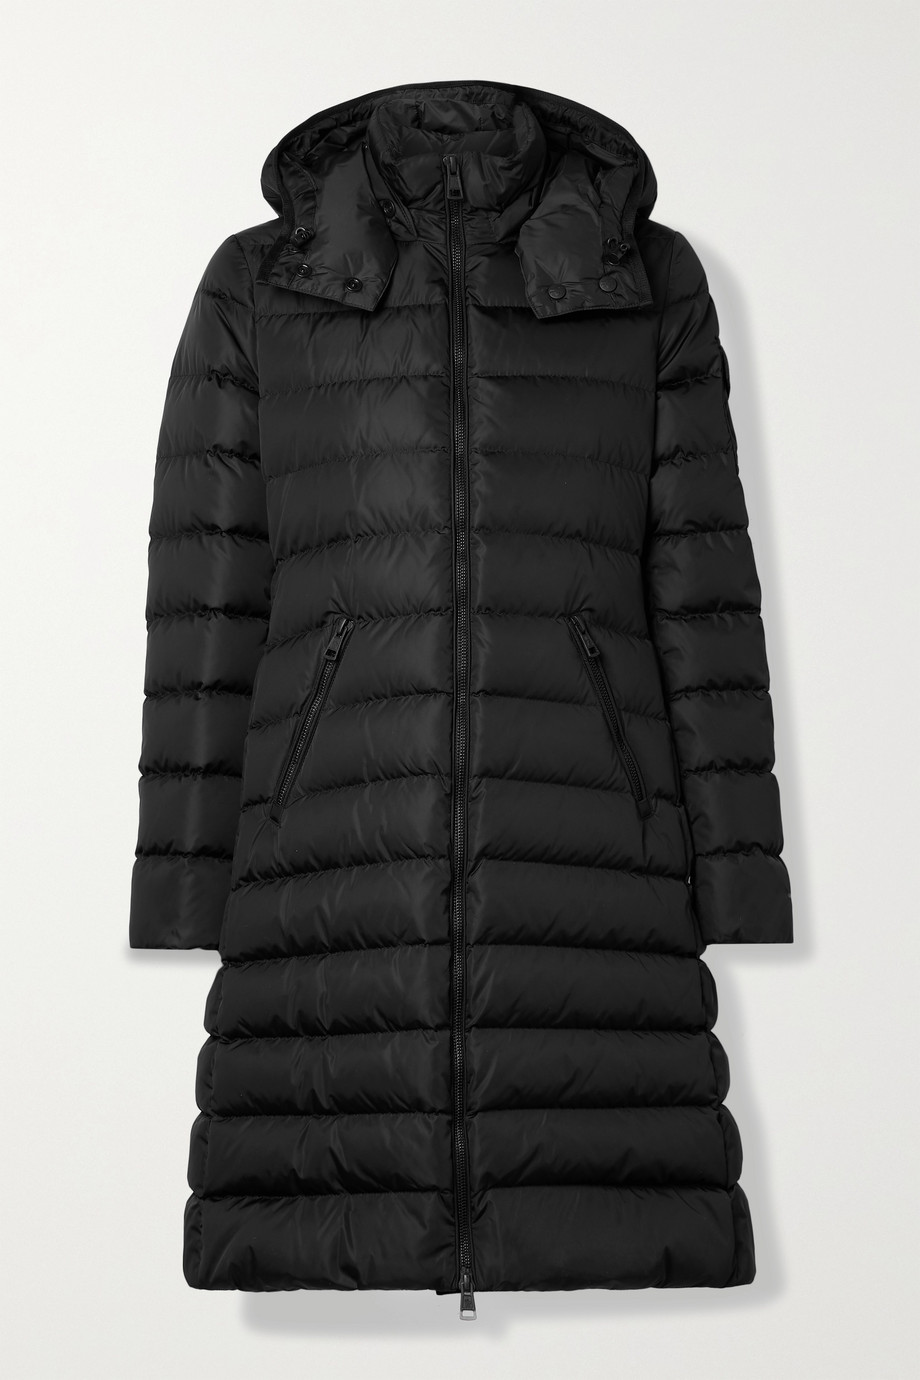 Moncler Lemenez hooded quilted ECONYL down coat